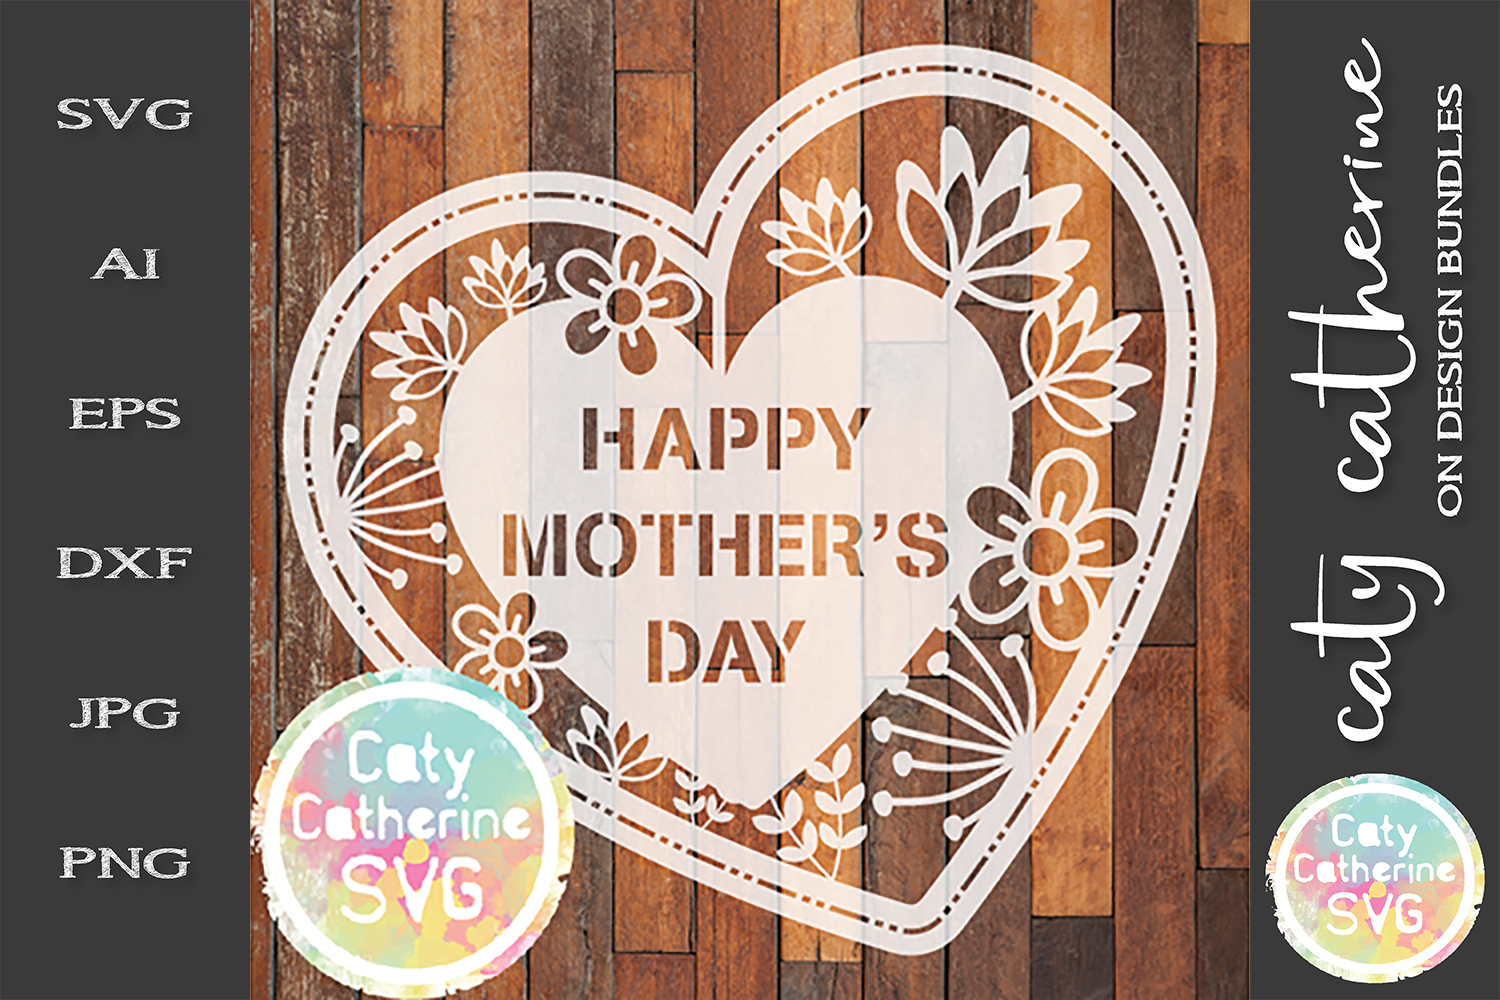 Happy Mother's Day SVG Paper Cut File example image 1